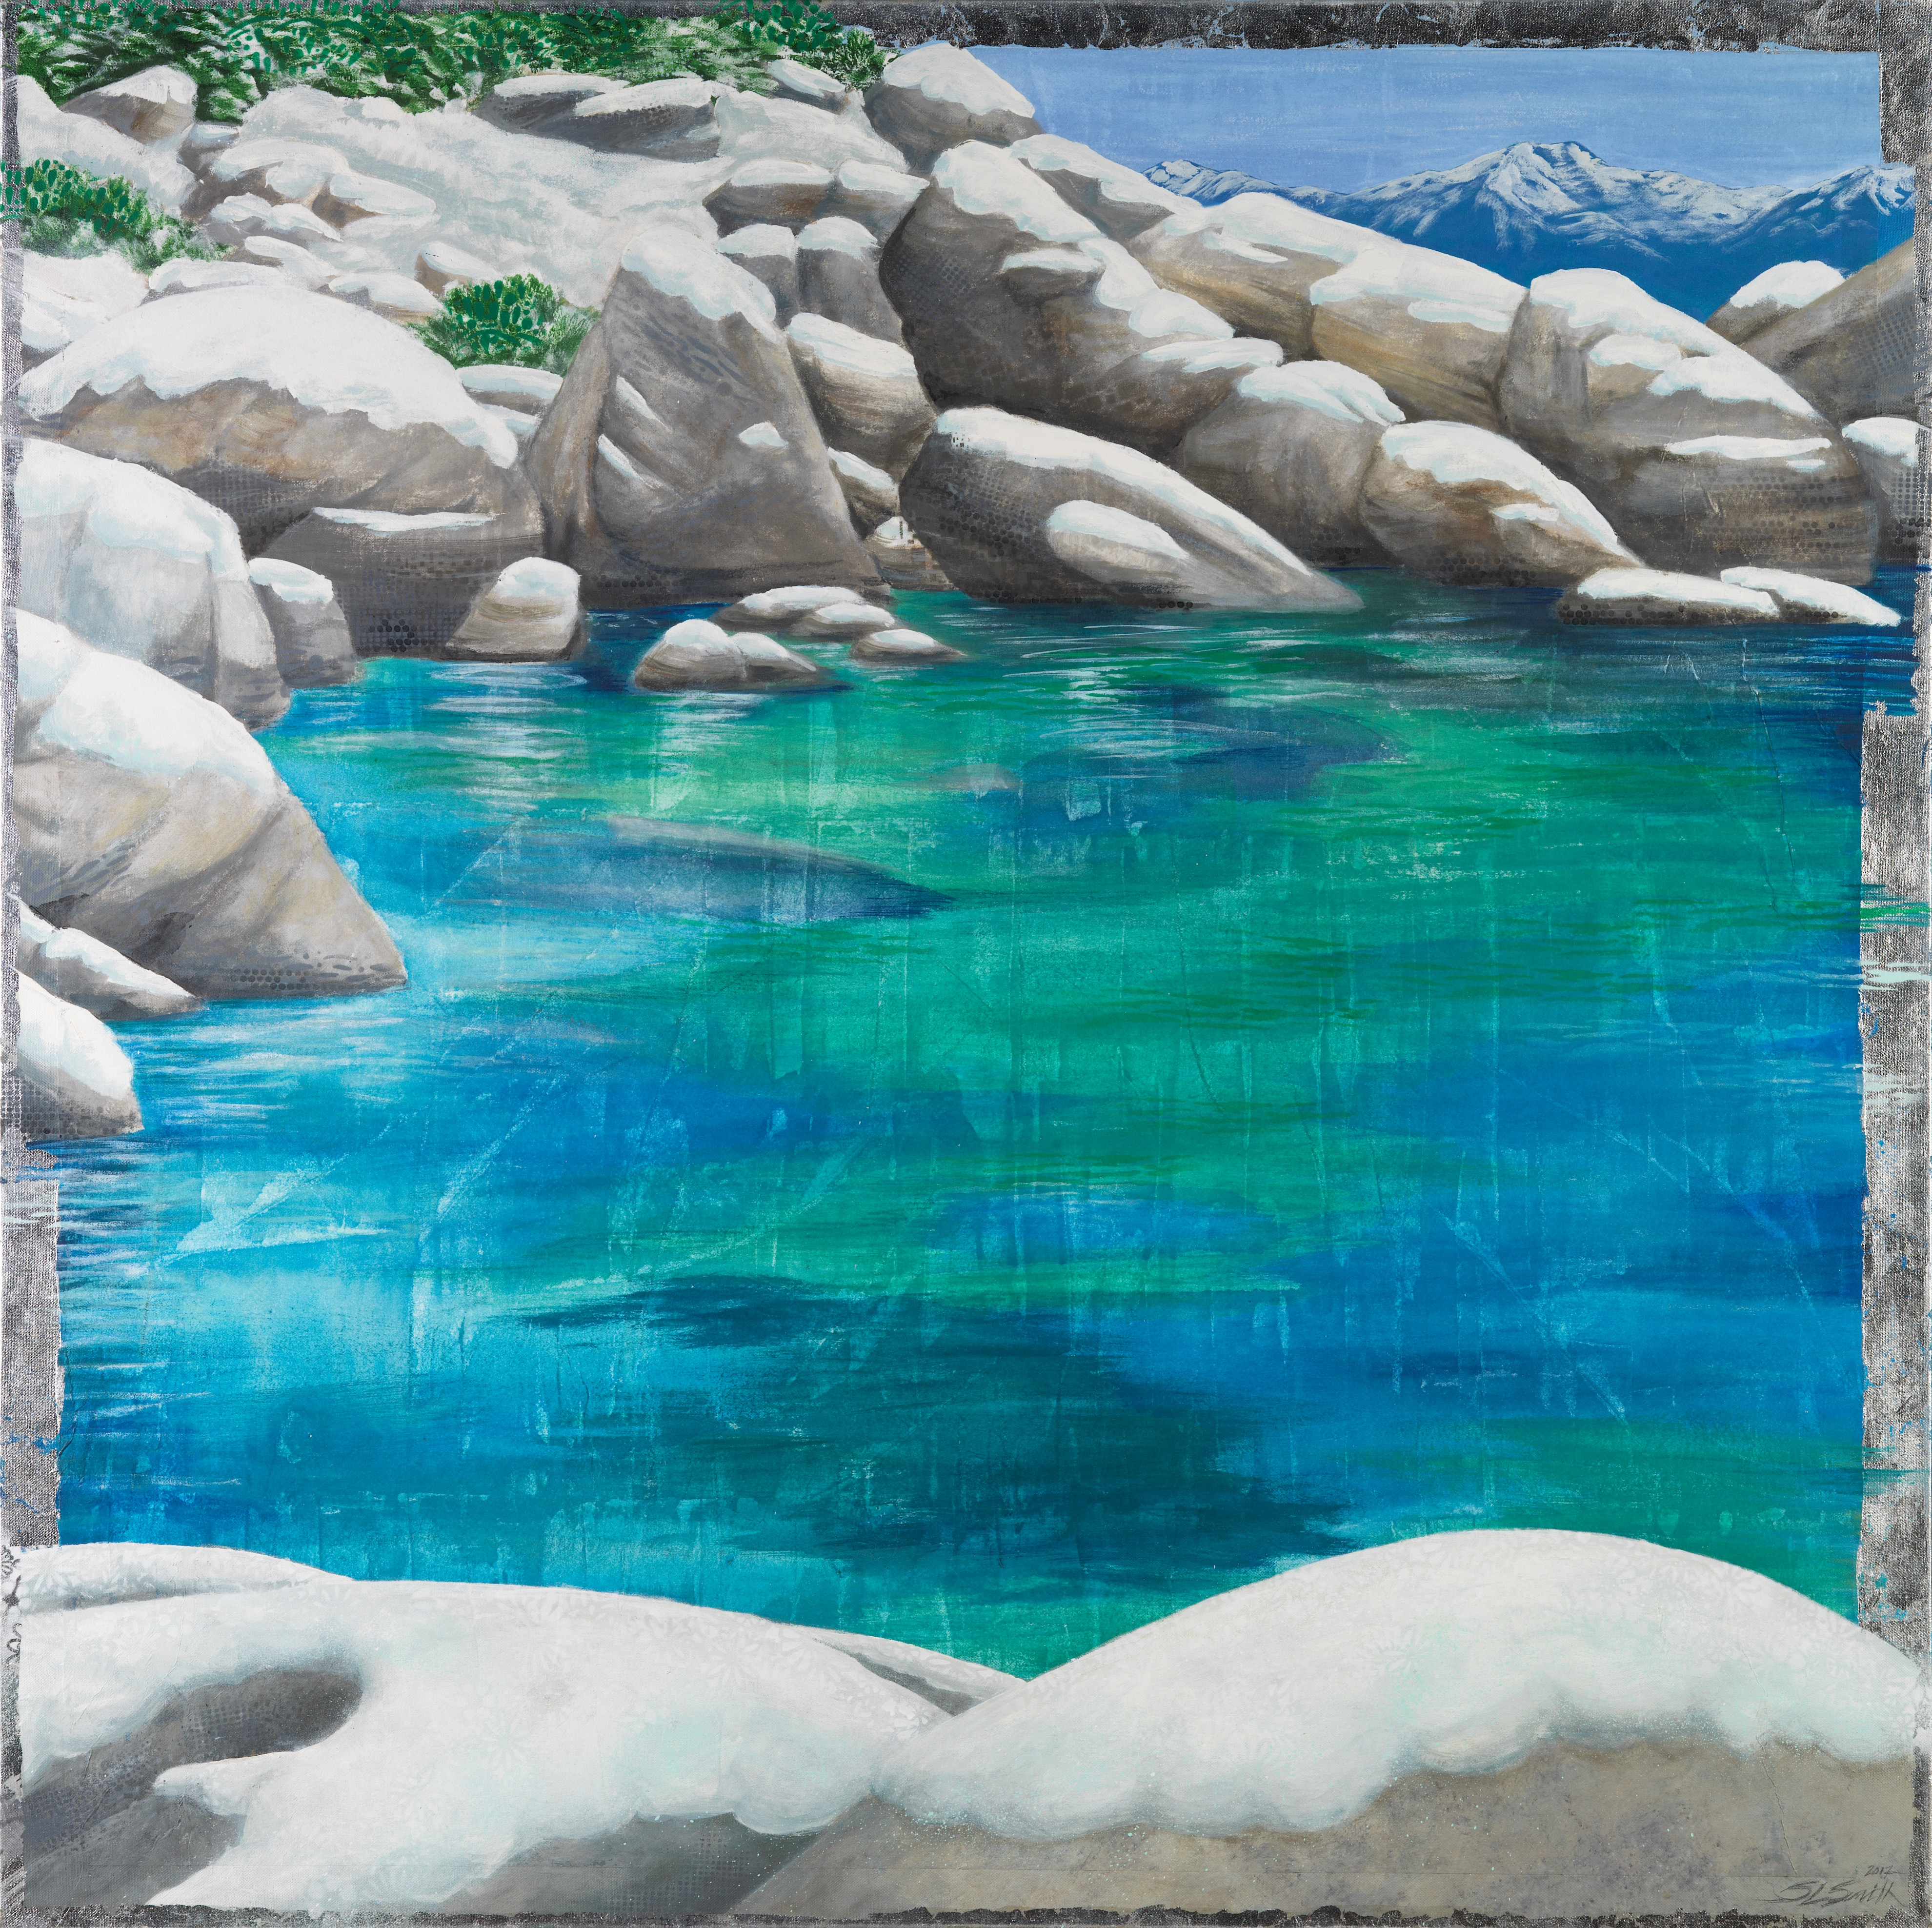 Winter Cove - Truckee and Lake Tahoe fine artist landscape painter nature painting boulders